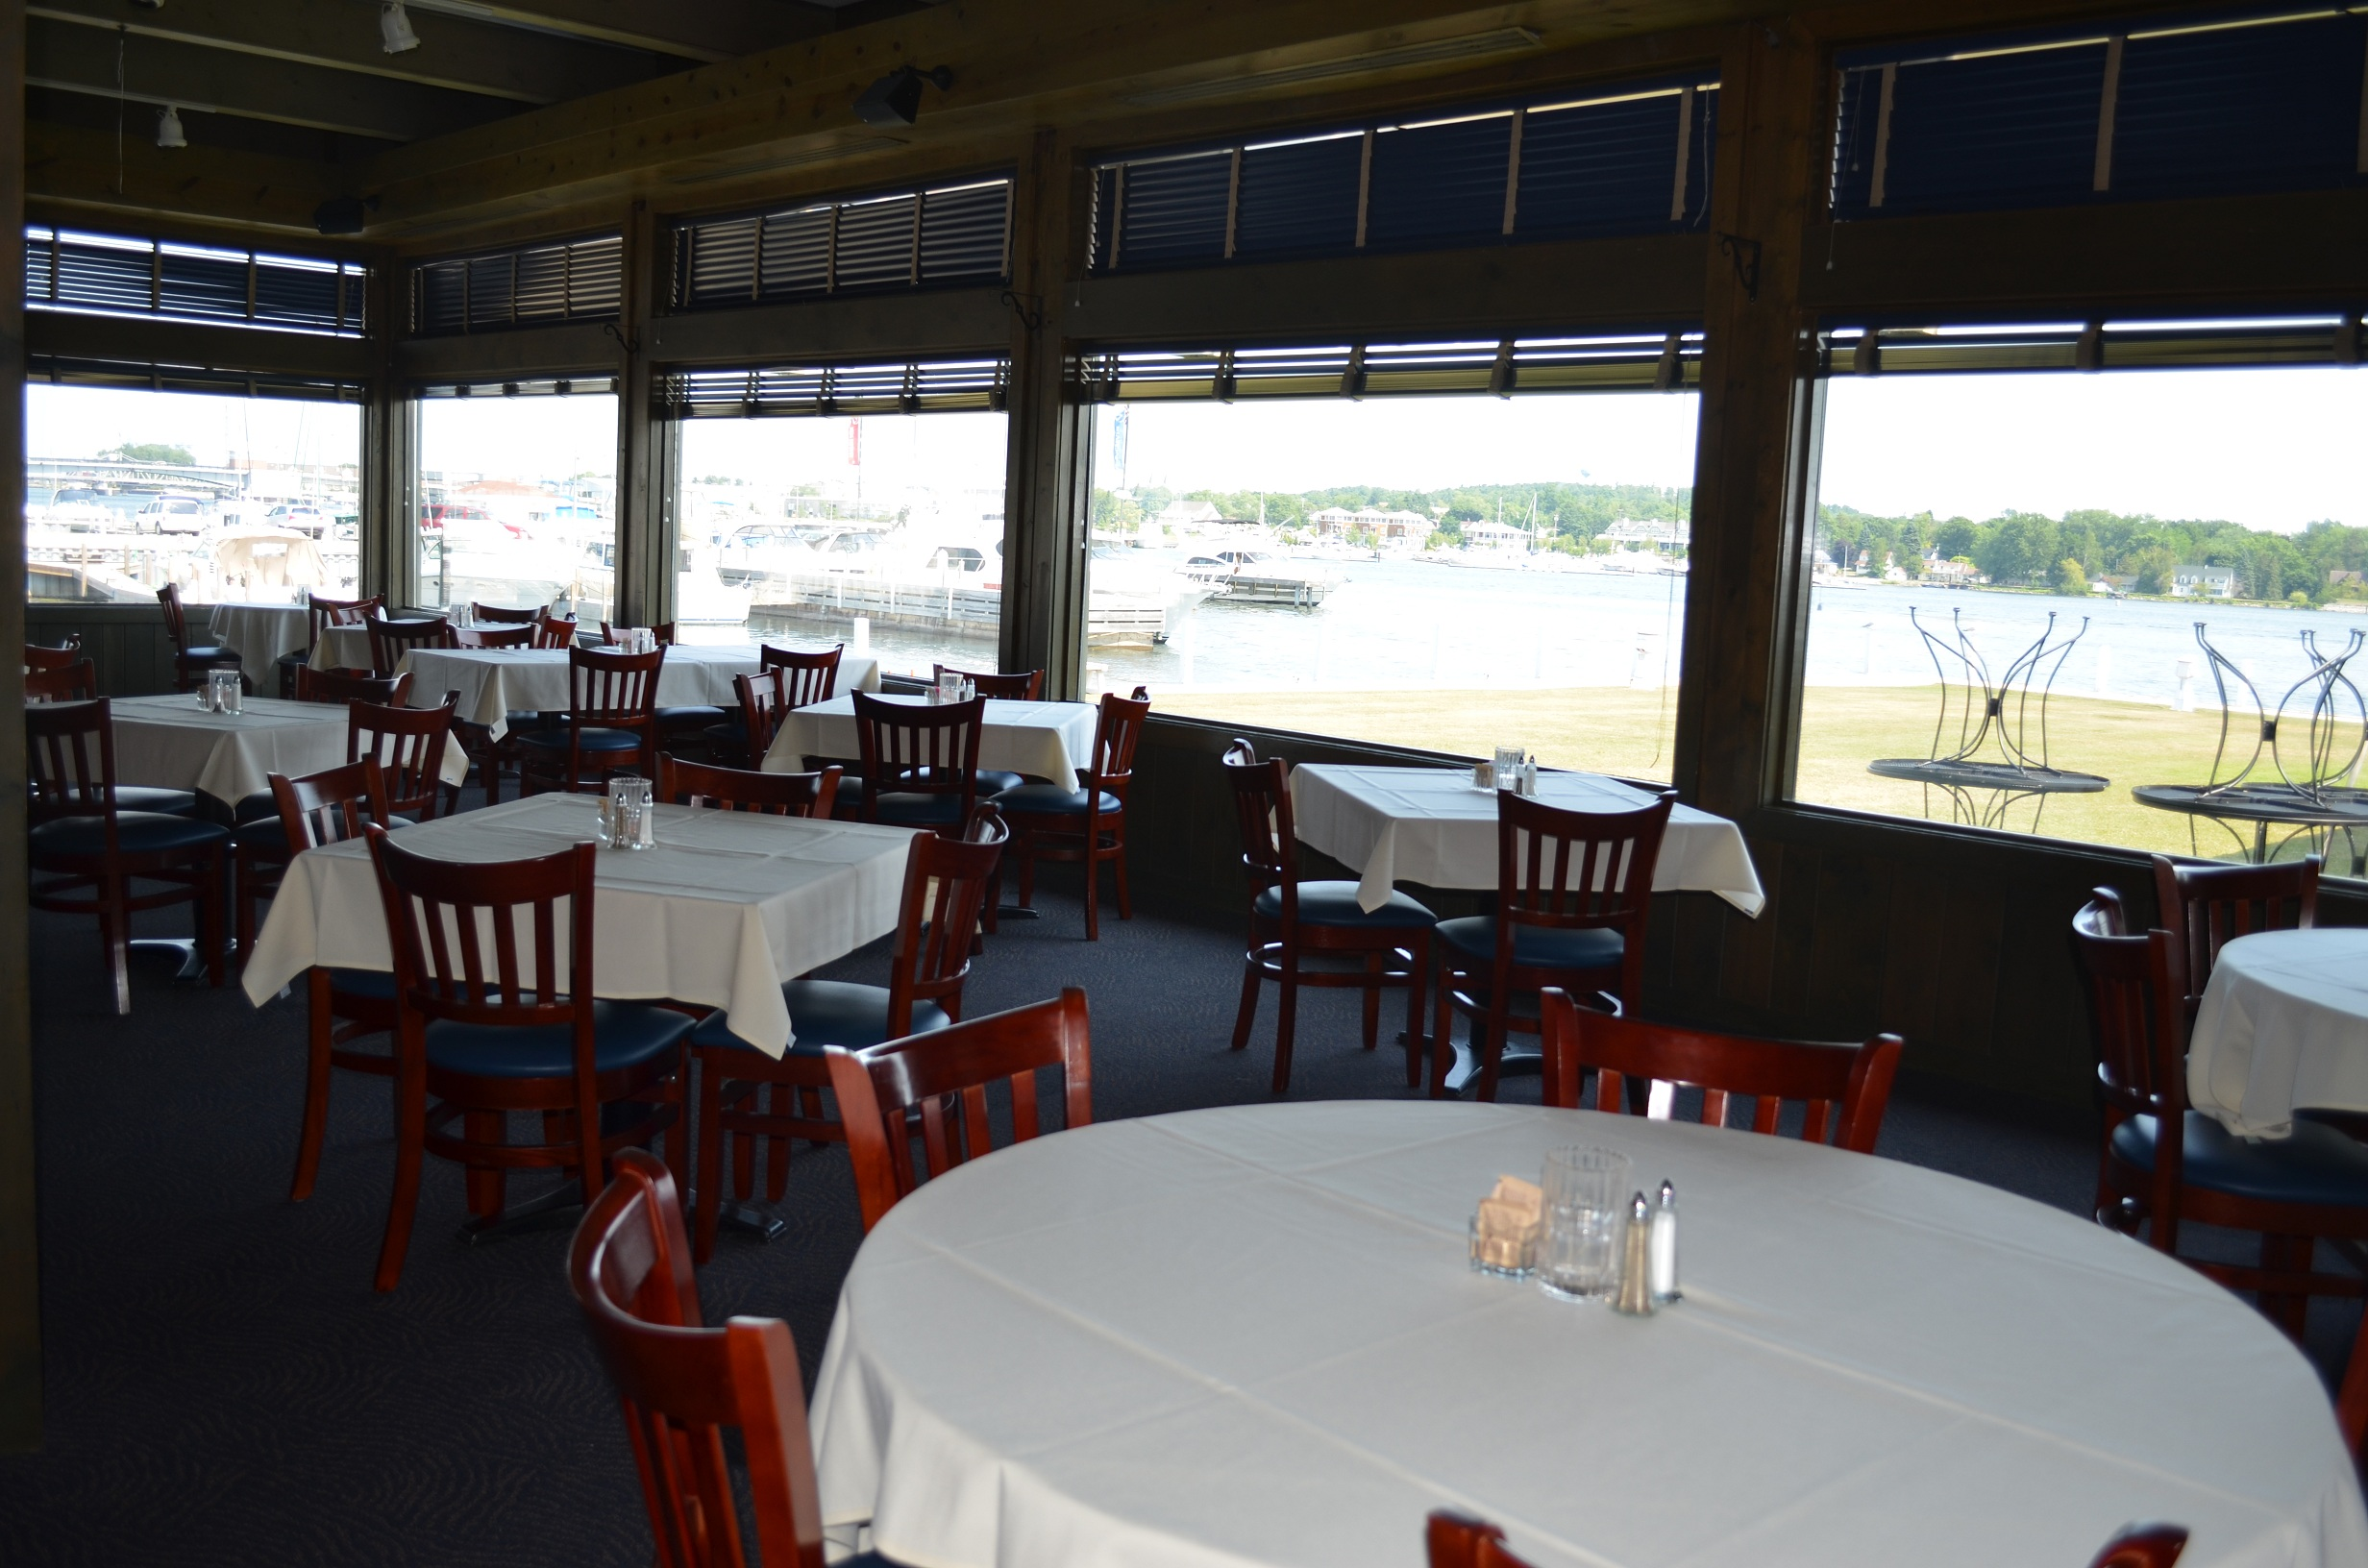 Restaurantfurniture and historic sturgeon bay yacht